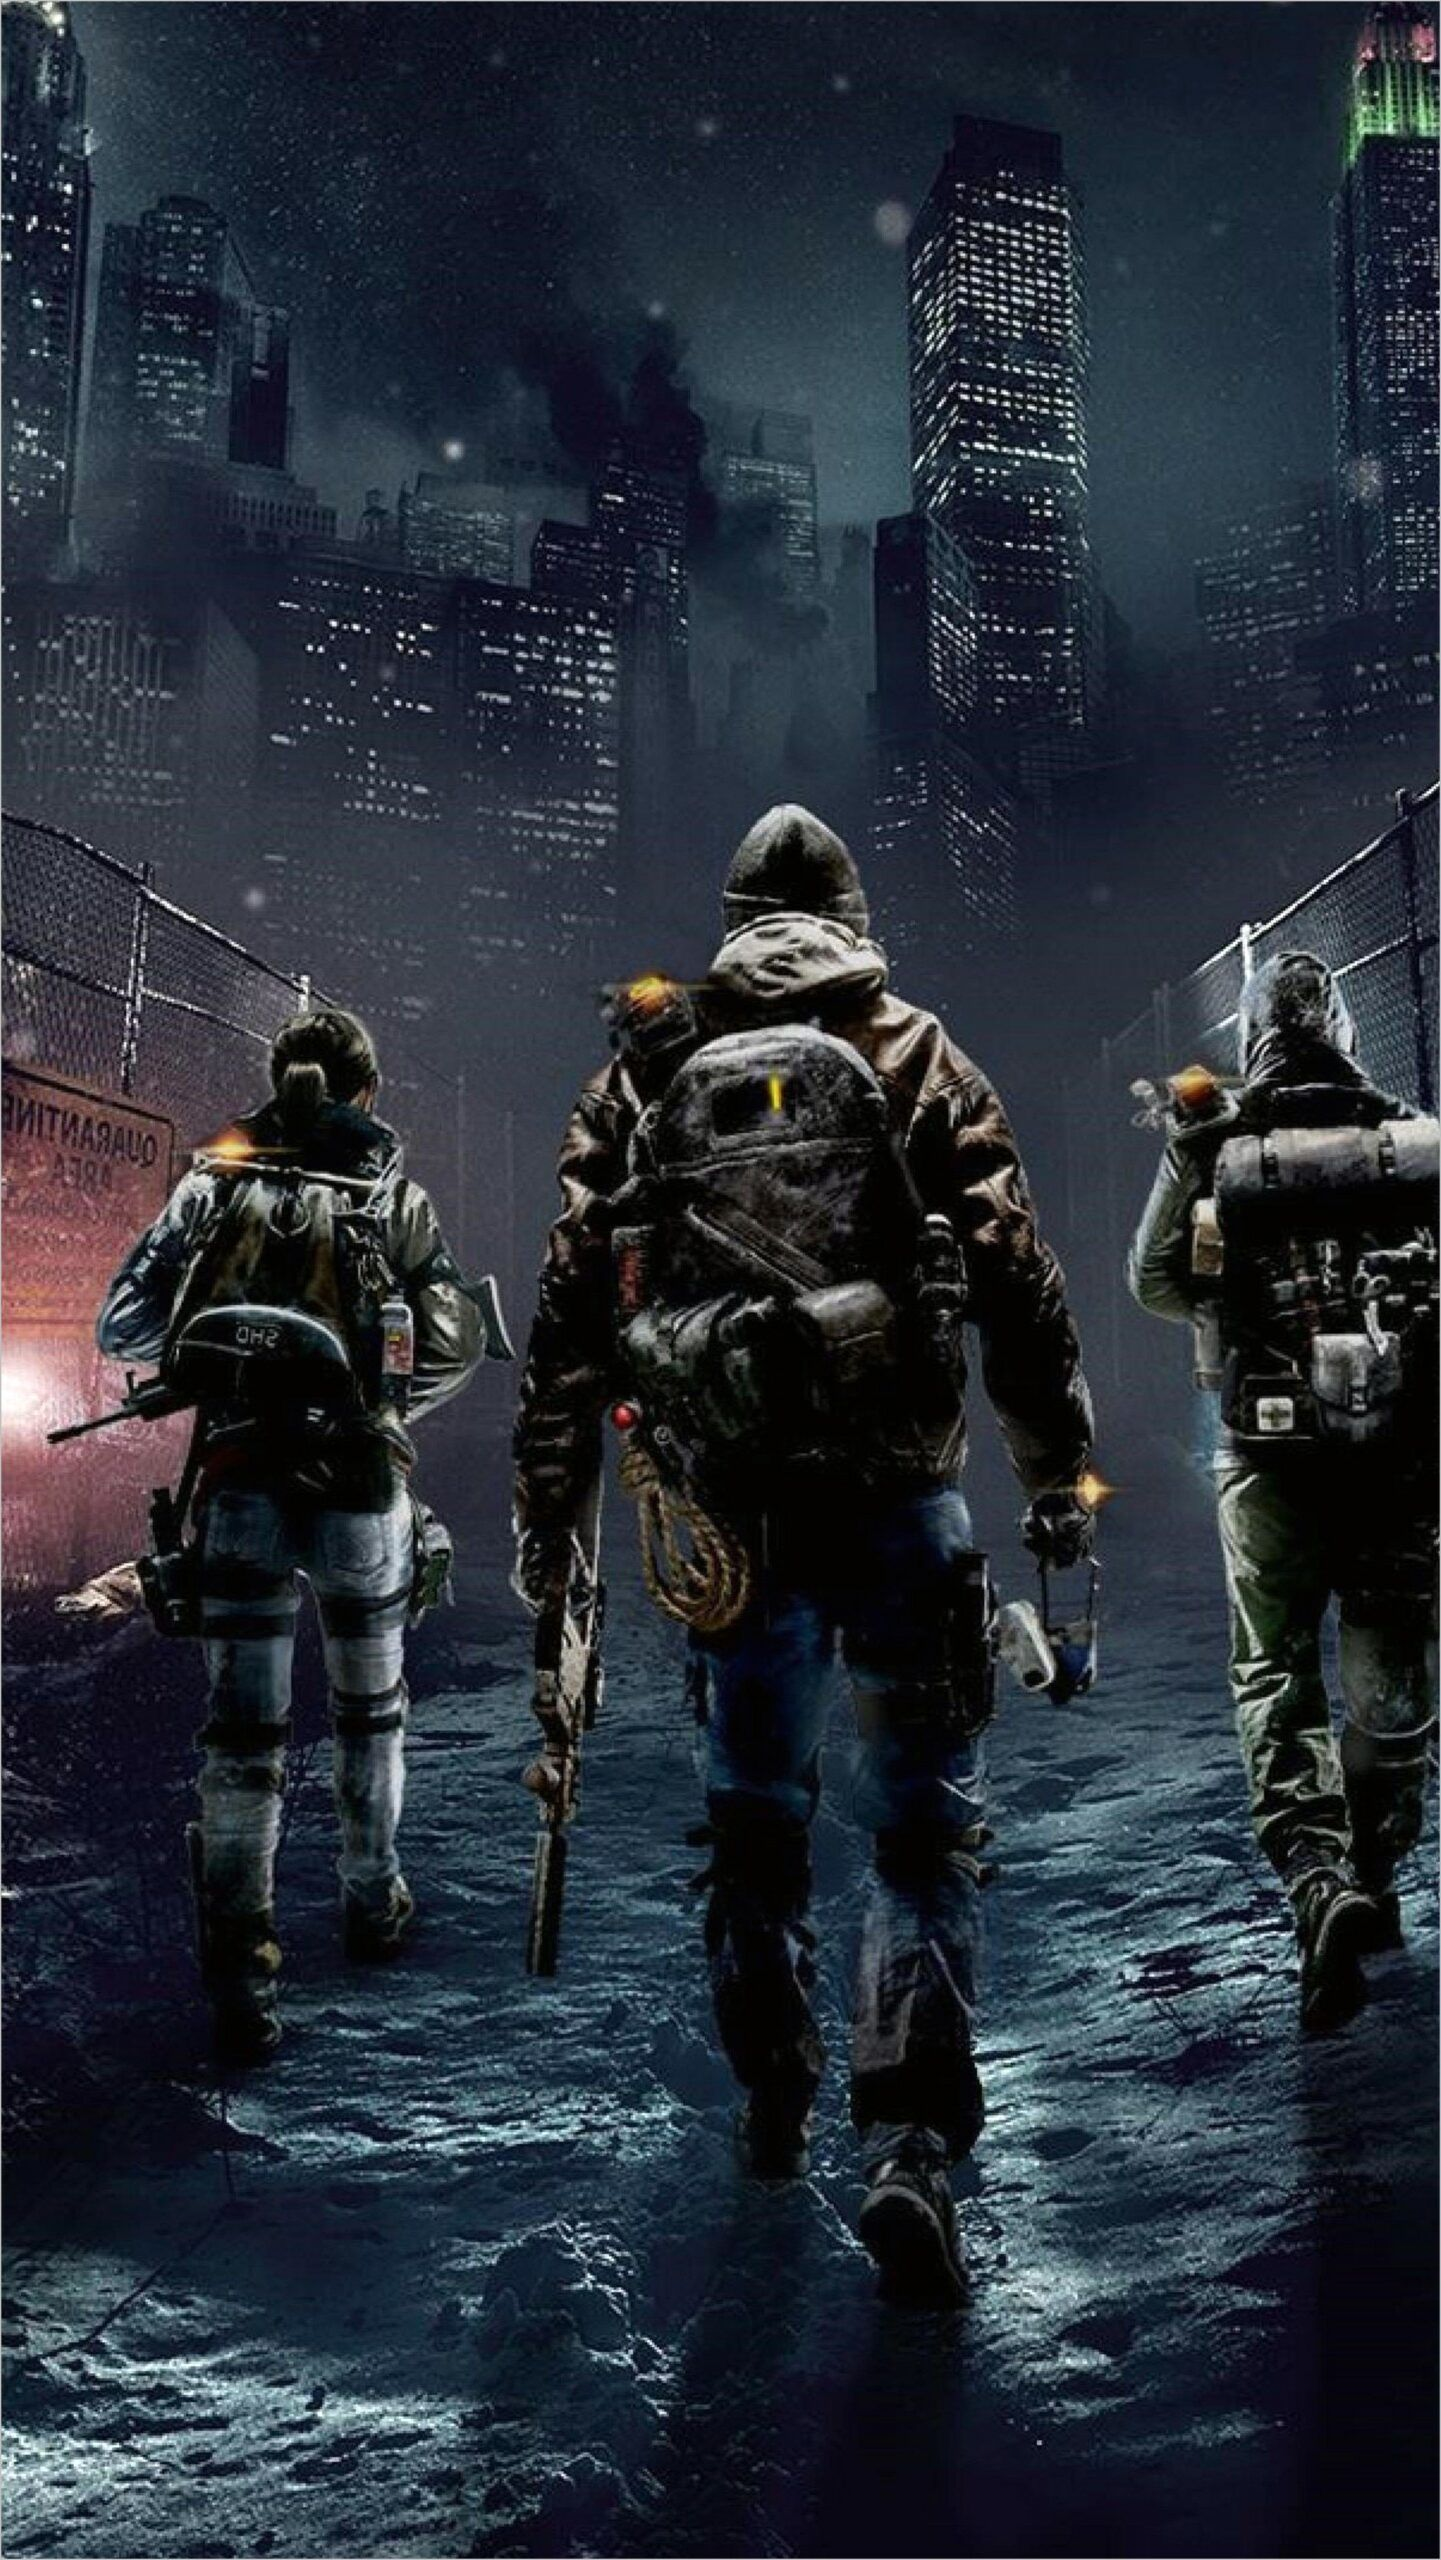 Badass 4k Wallpaper The Division In 2020 Tom Clancy The Division Gaming Wallpapers Tom Clancy